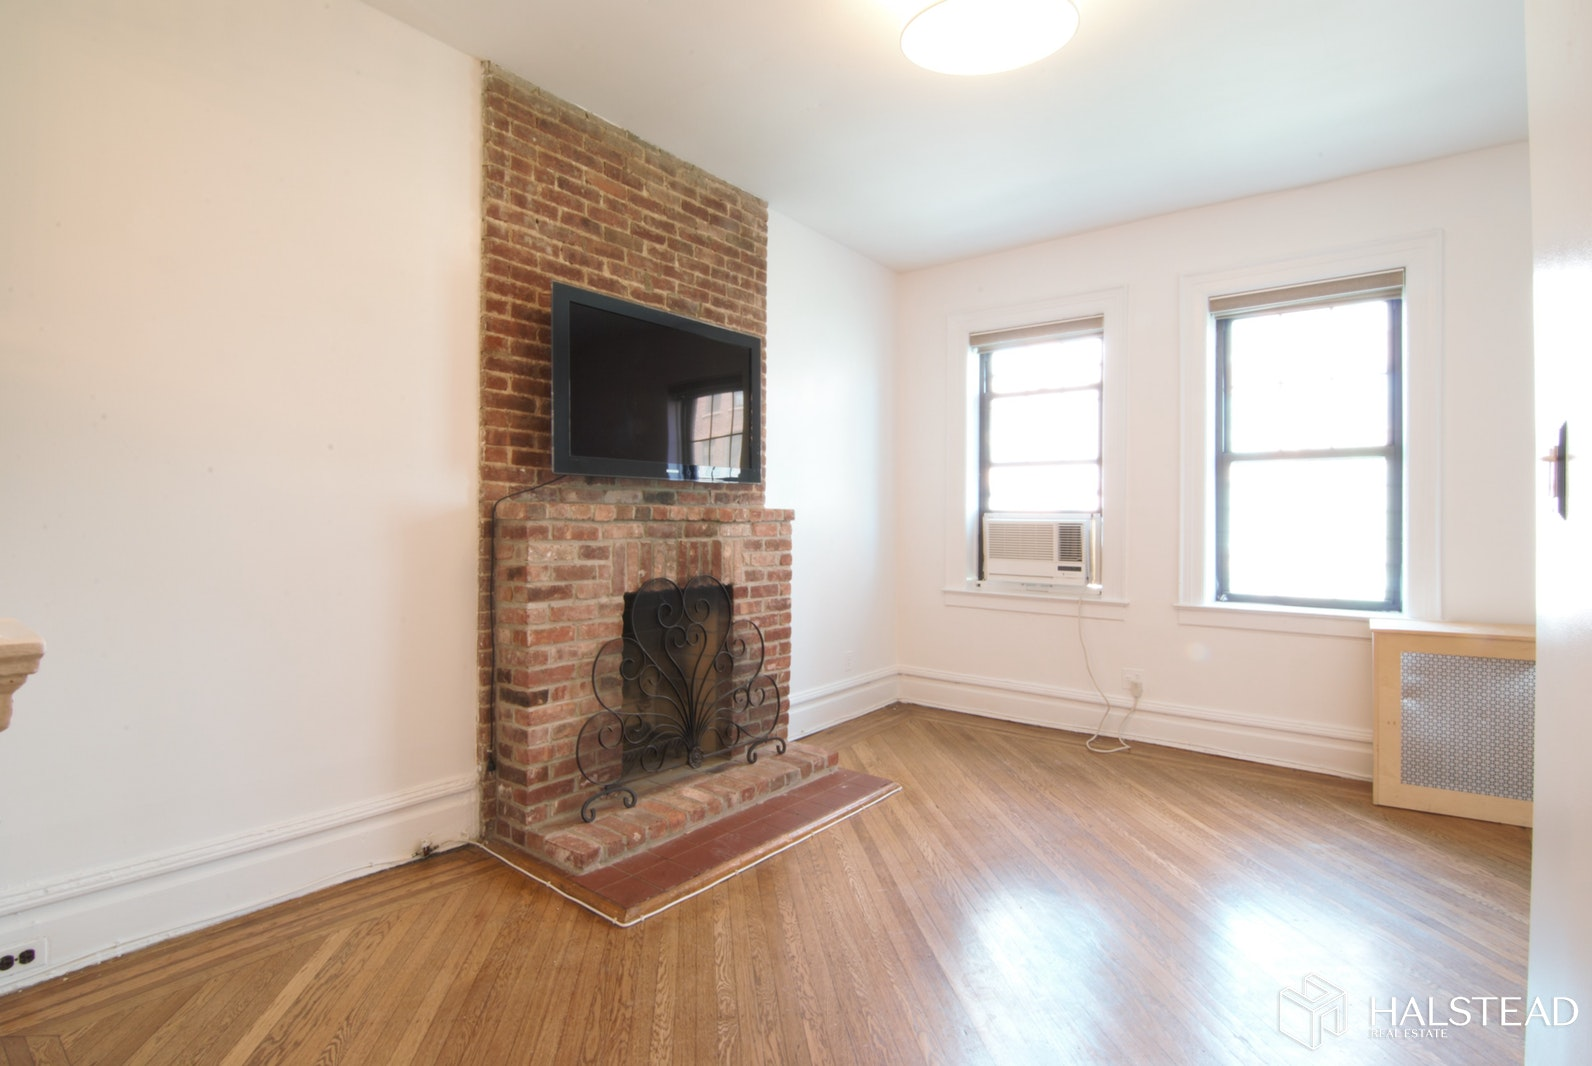 904 Union Street 4a, Park Slope, Brooklyn, NY, 11215, $3,300, Rented Property, Halstead Real Estate, Photo 2